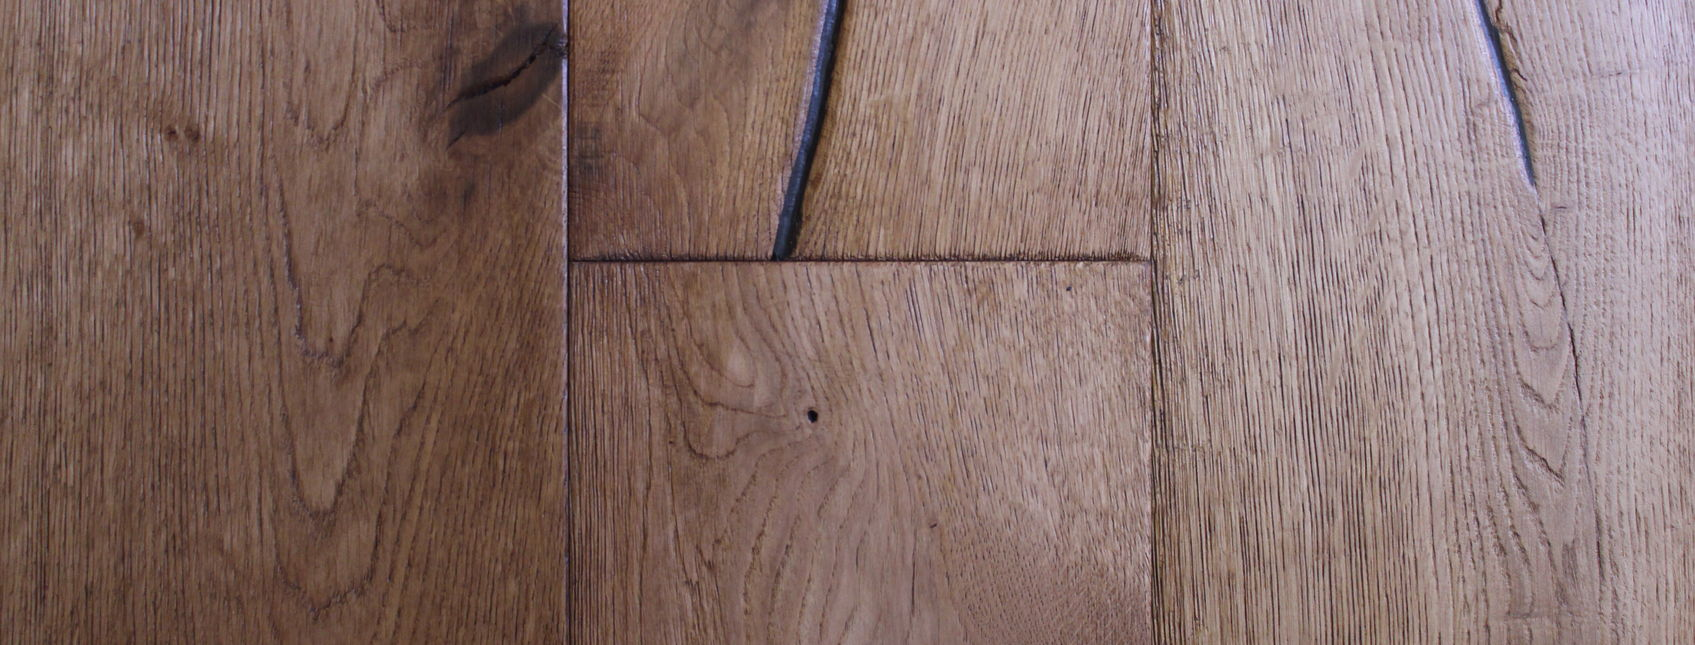 Textured engineered oak flooring